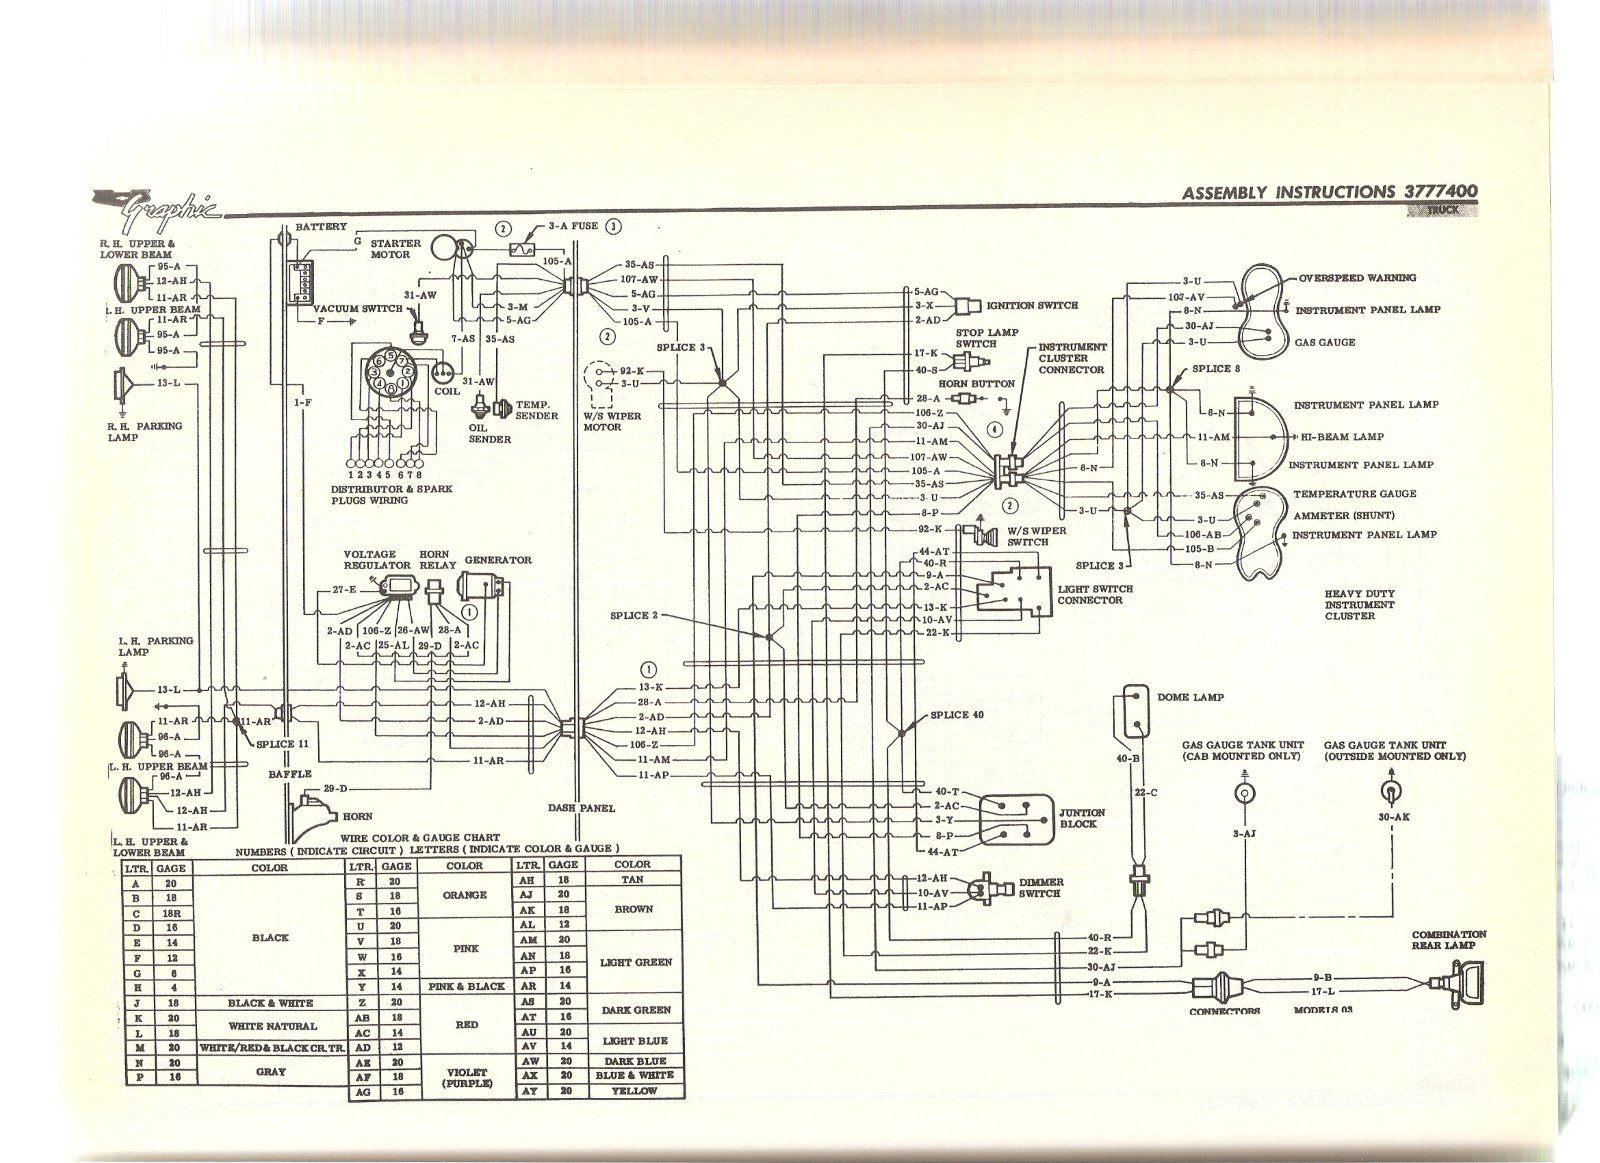 1958 Gmc Truck Wiring Diagram Opinions About 1970 For 1961 Chevy C10 Apache 2005 1993